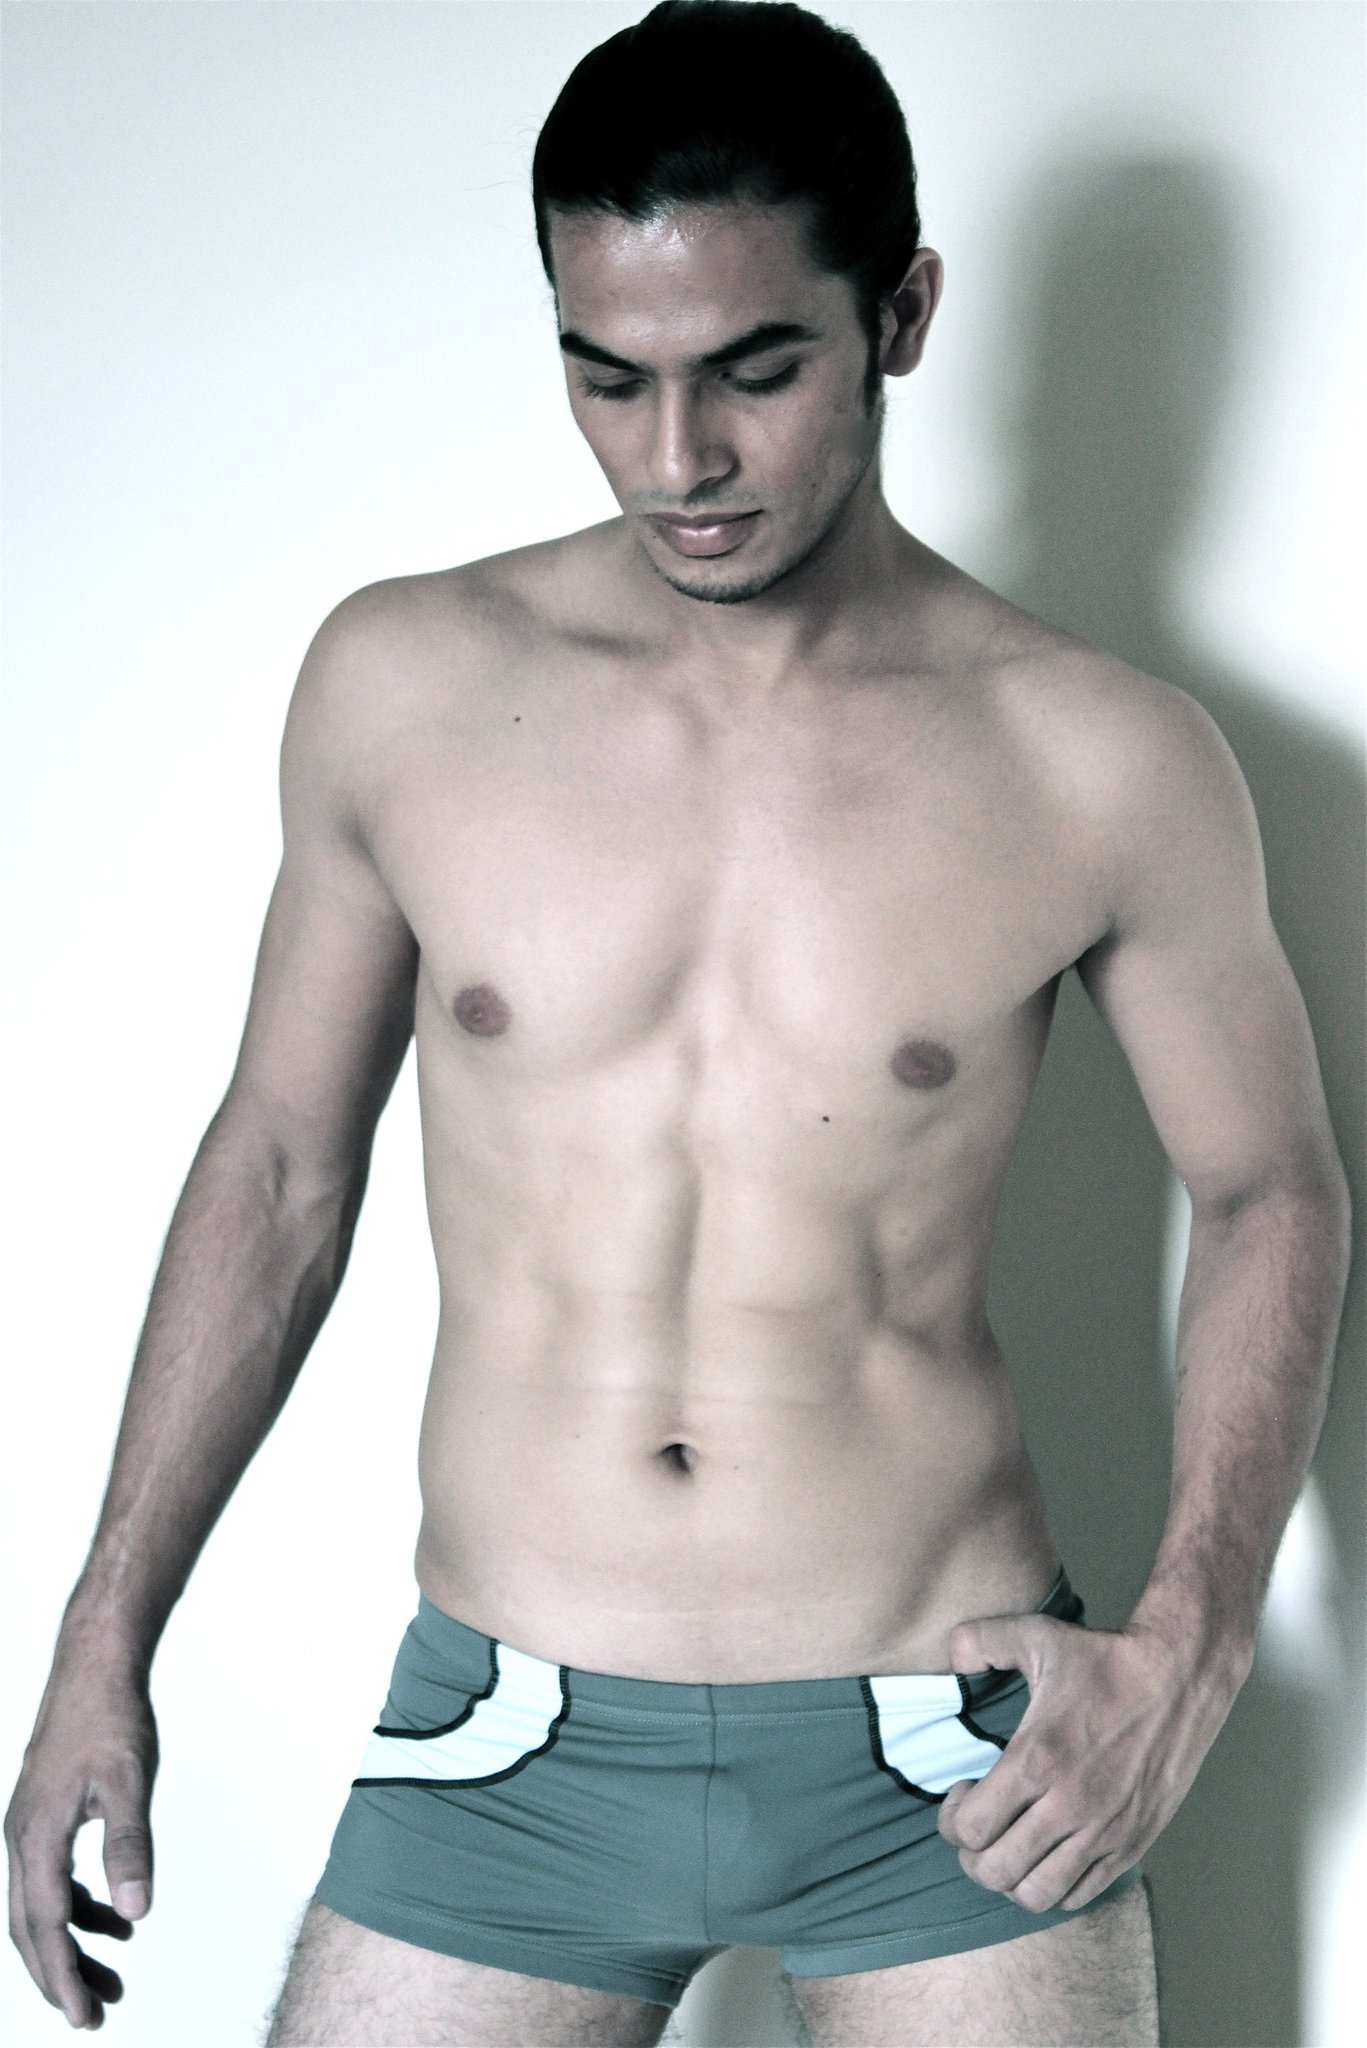 Monika d model male models picture indian male models voltagebd Image collections